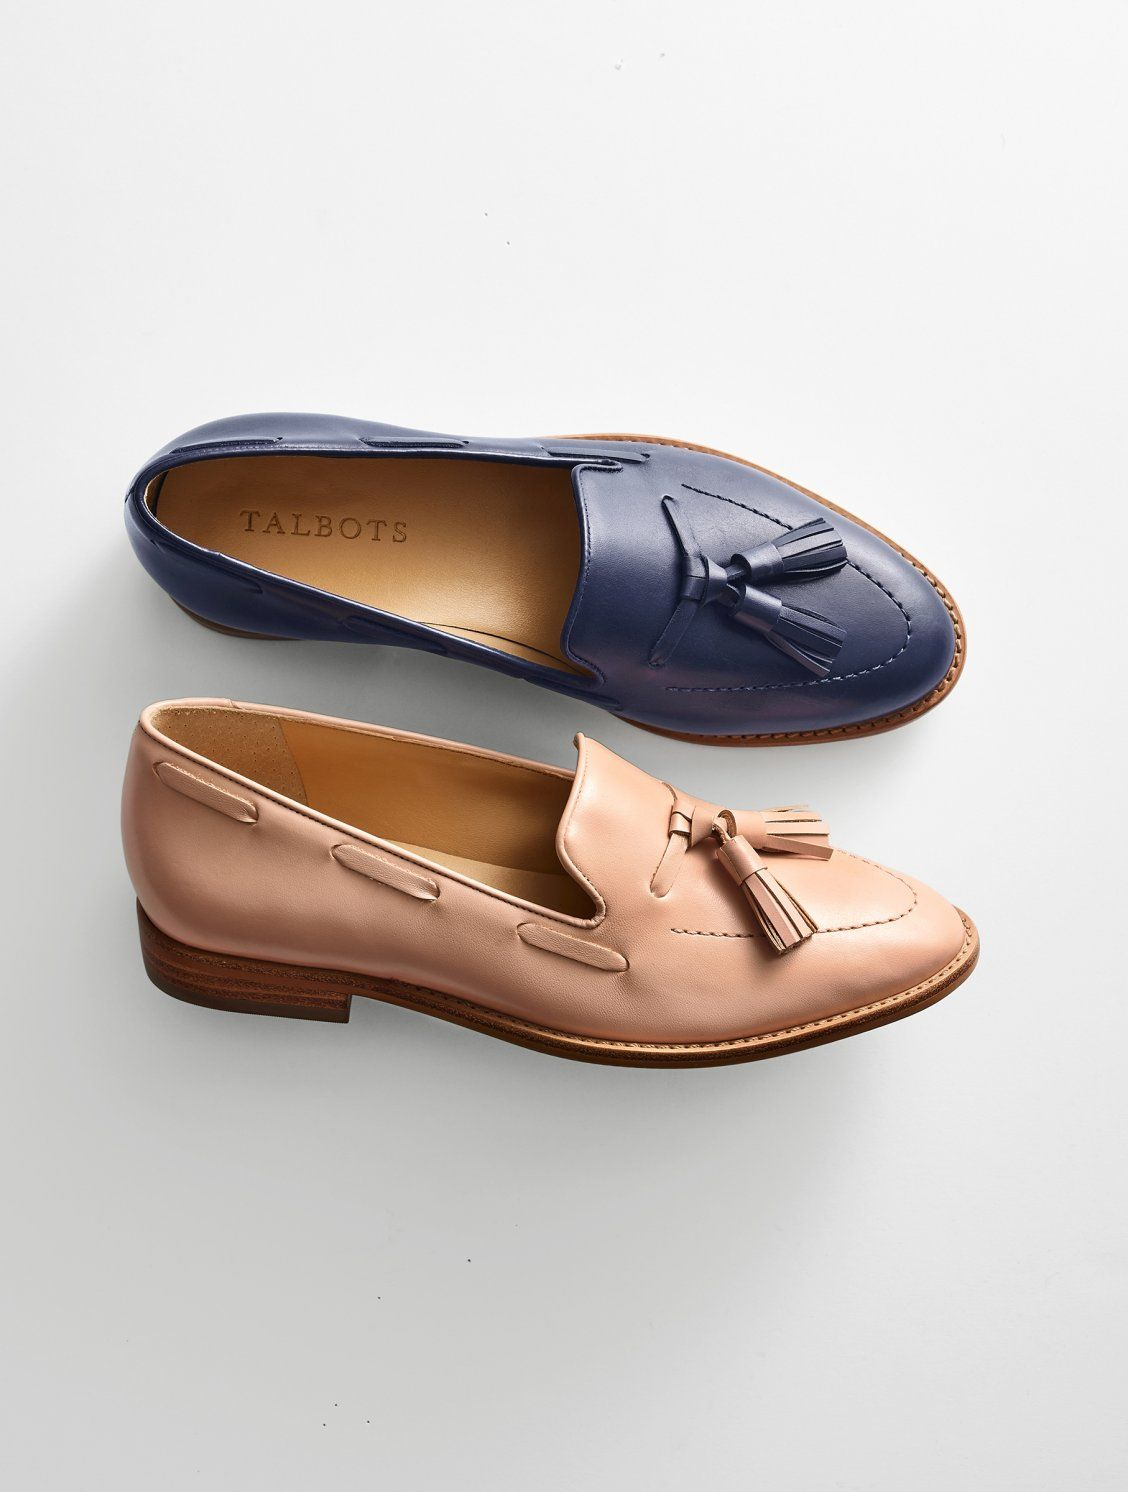 74cb4220646eb Our new Leighton loafers feature classic tassel detail and a stylish  pointed toe. With a memory foam footbed and breathable lining, you can wear  them all ...